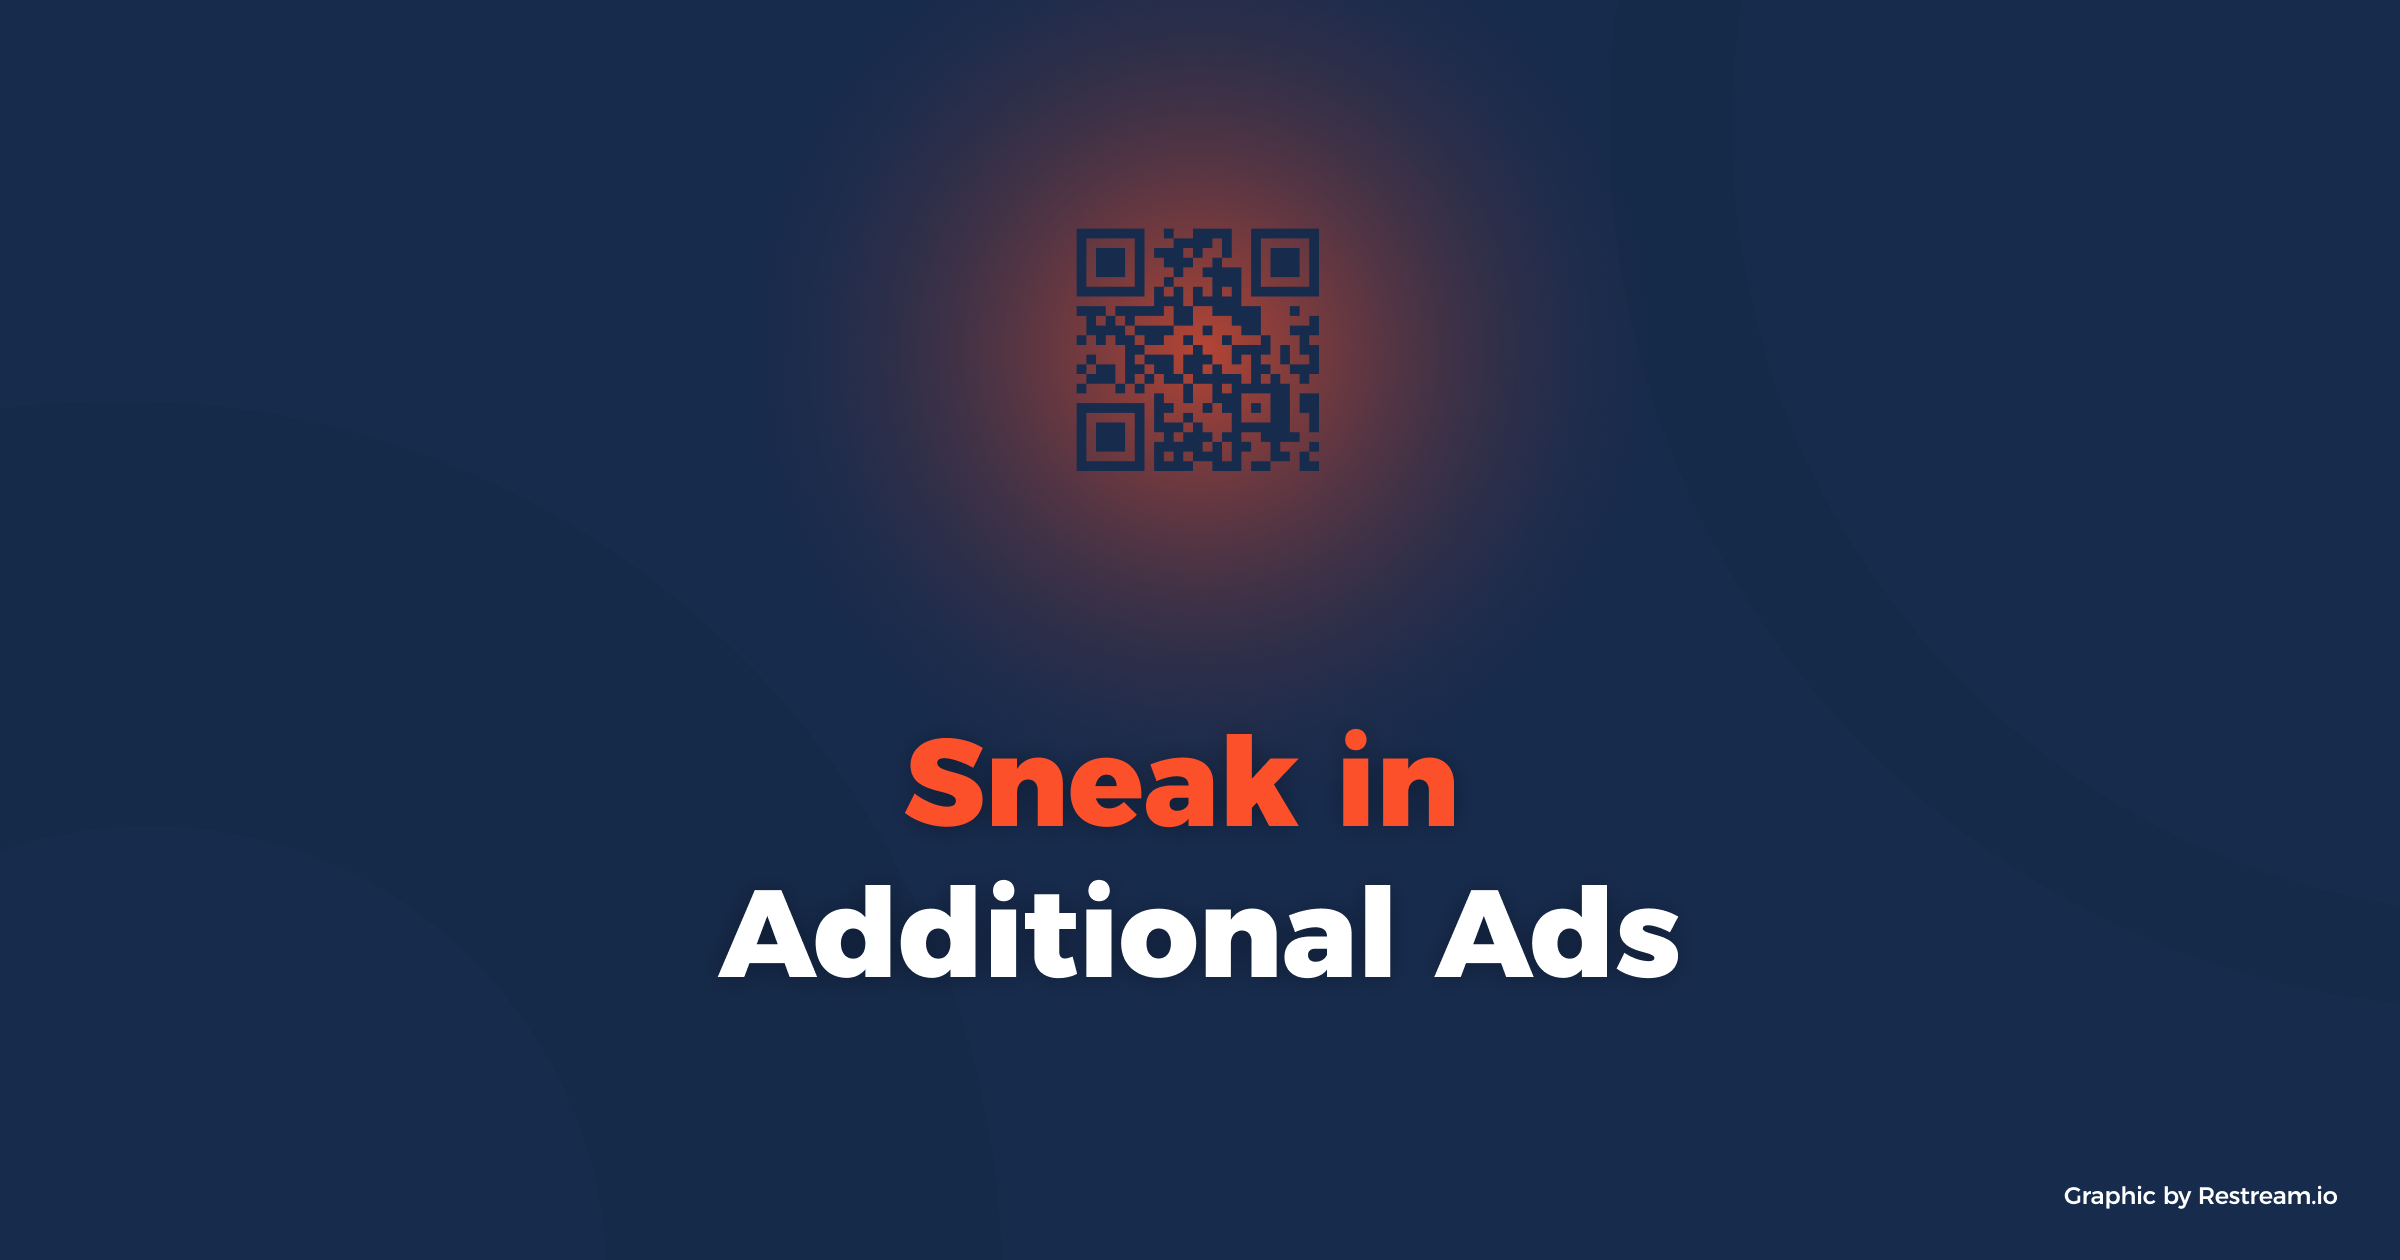 Sneak in additional ads